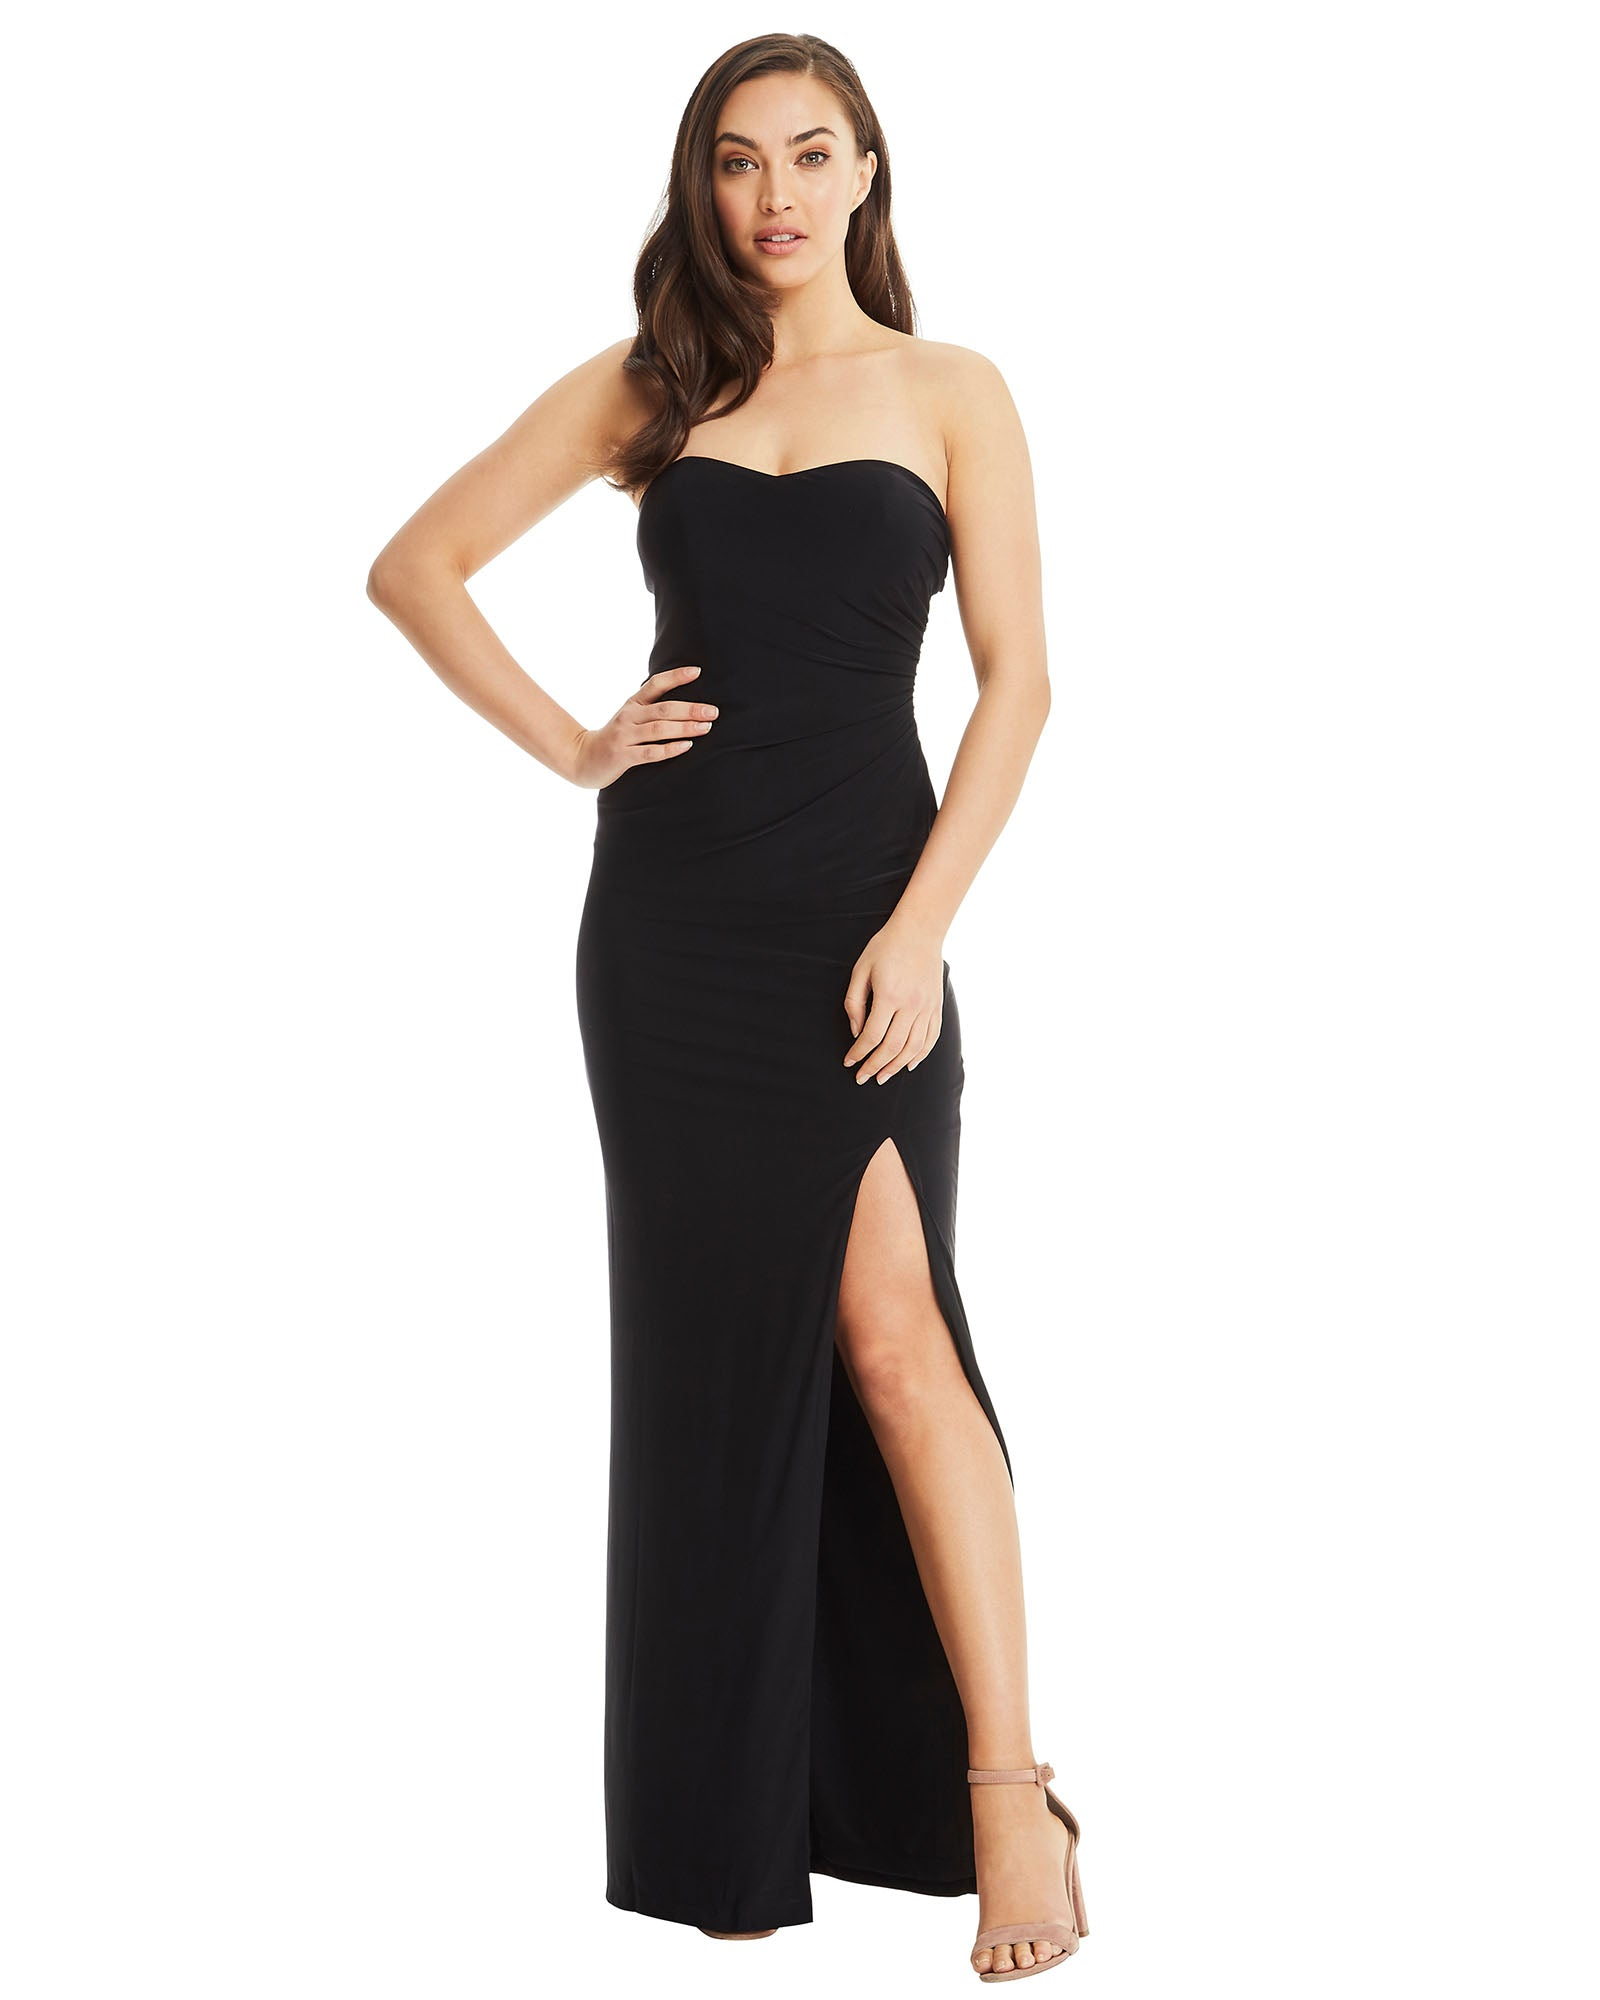 strapless evening dress long black split gown open back sheath stretch fabric